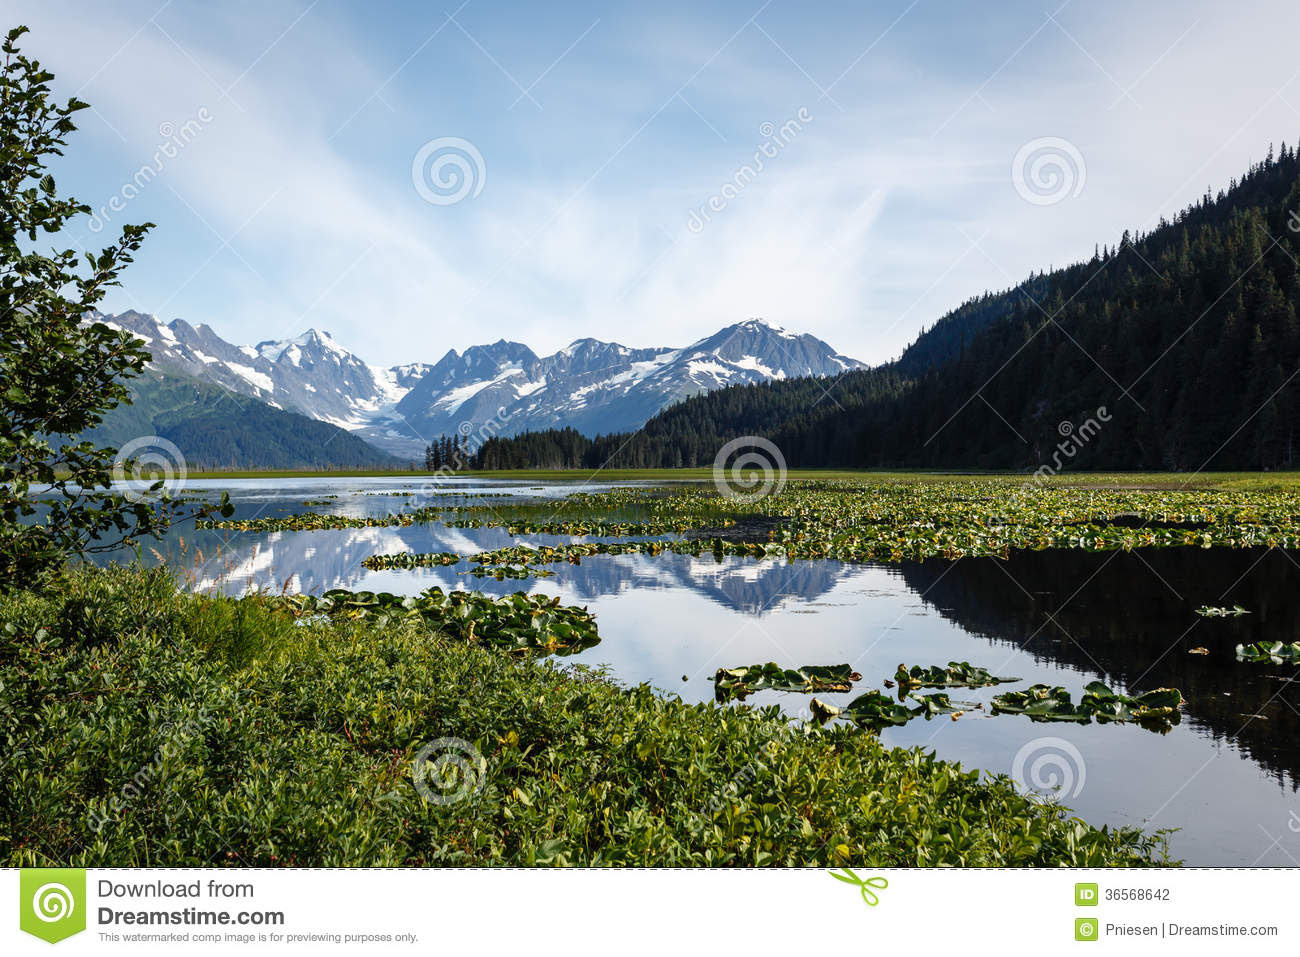 of snow capped mountains in pond in Alaskan wilderness in summer